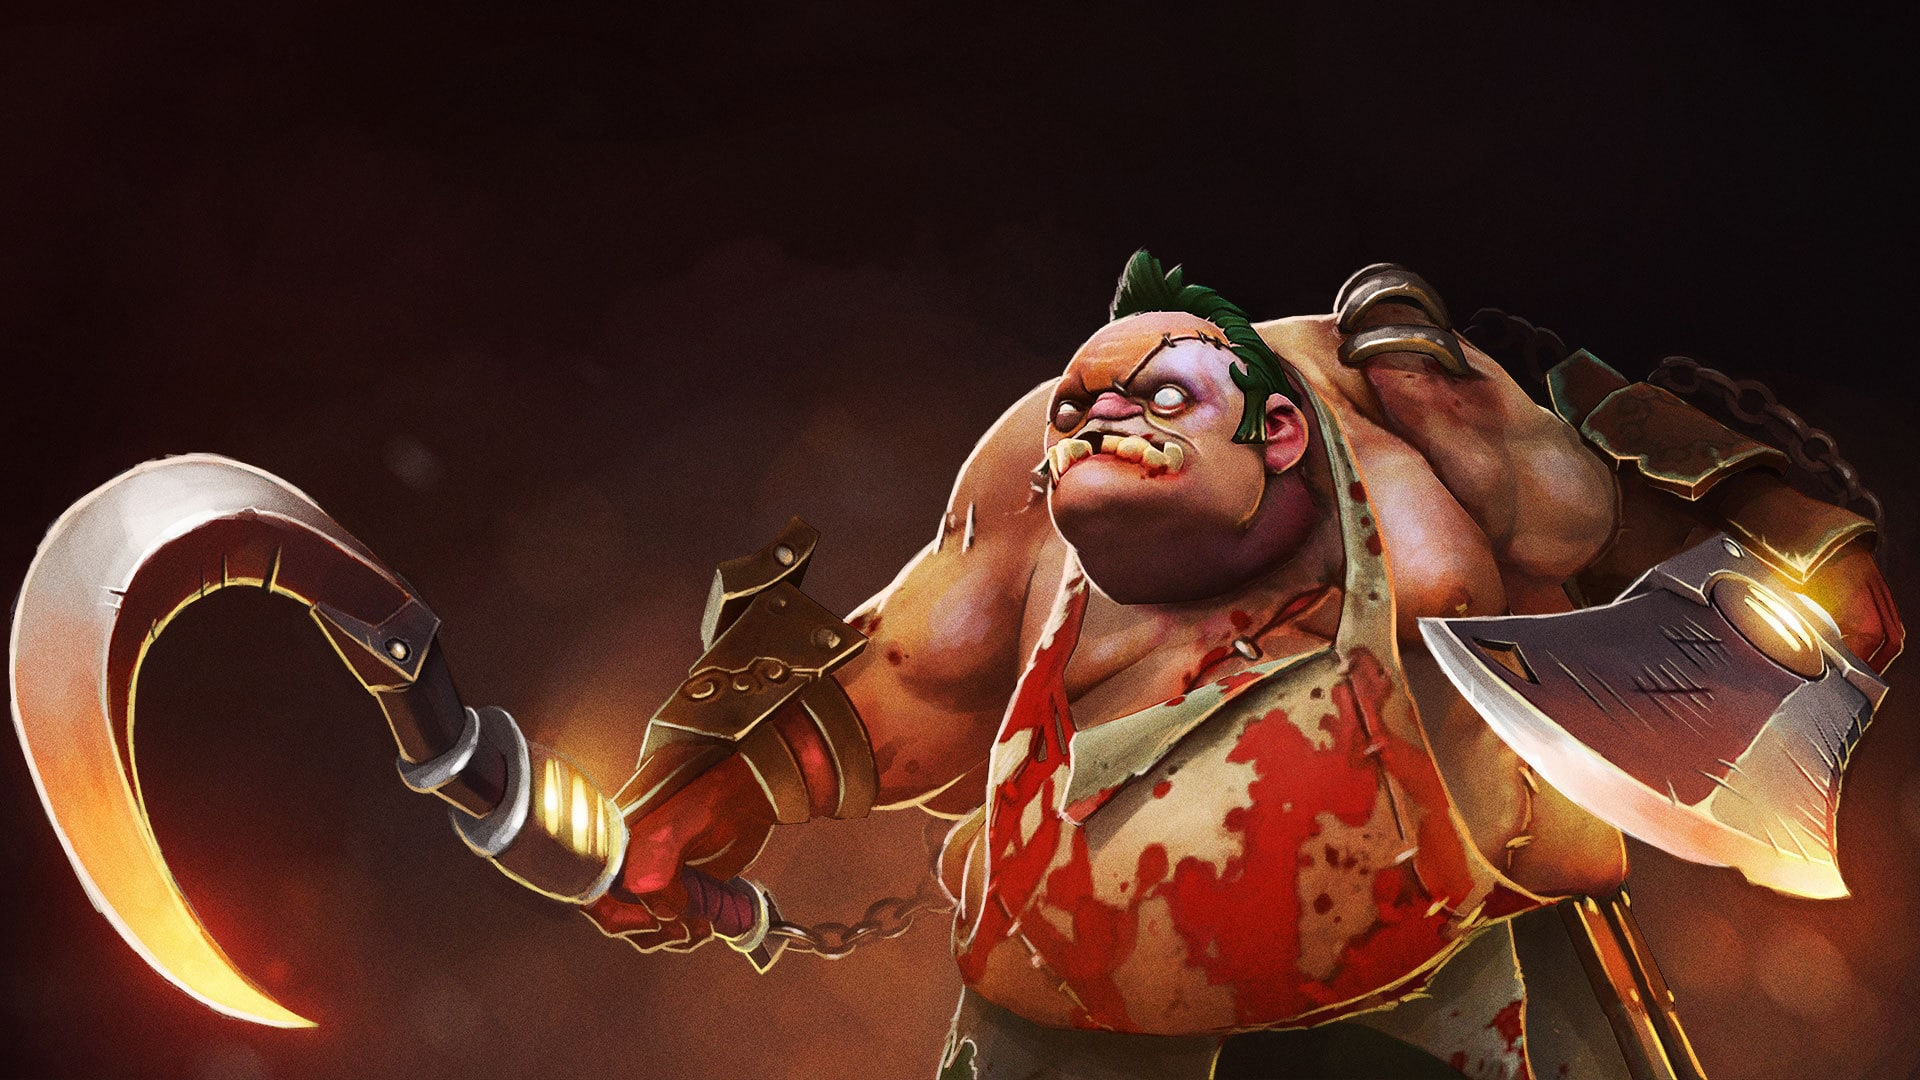 Dota2 : Pudge HD